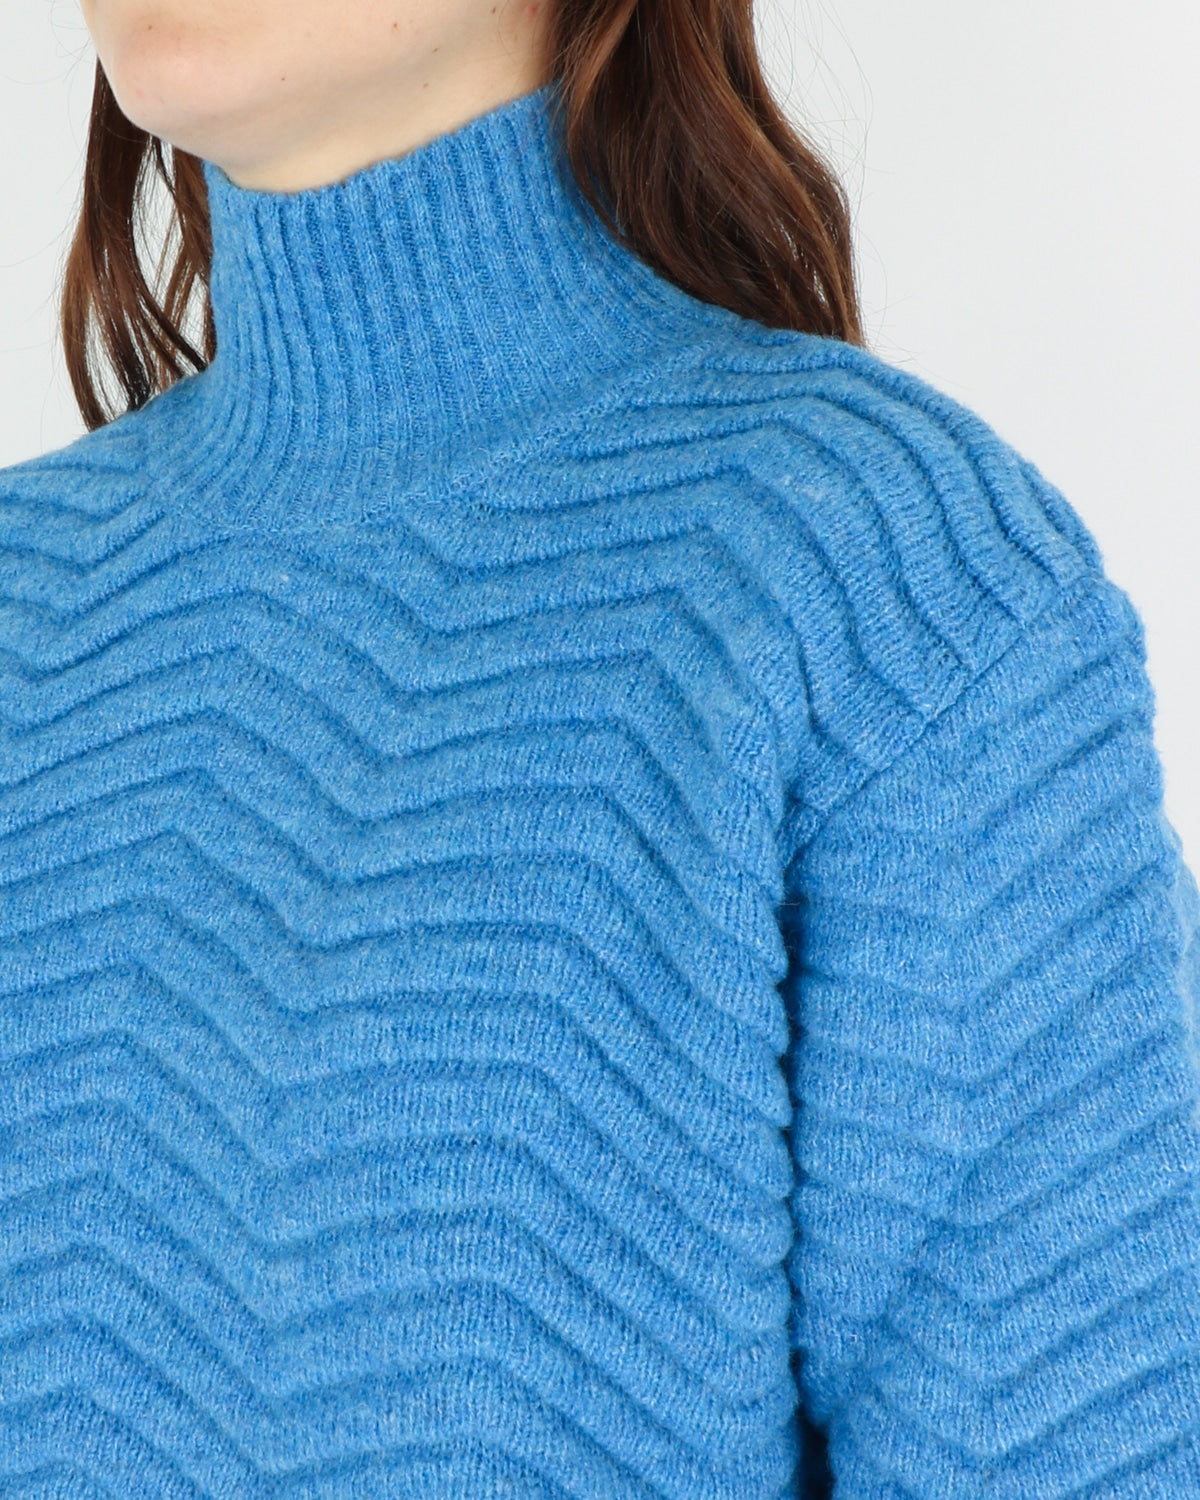 basic apparel_nille knit_azure blue_view_3_3